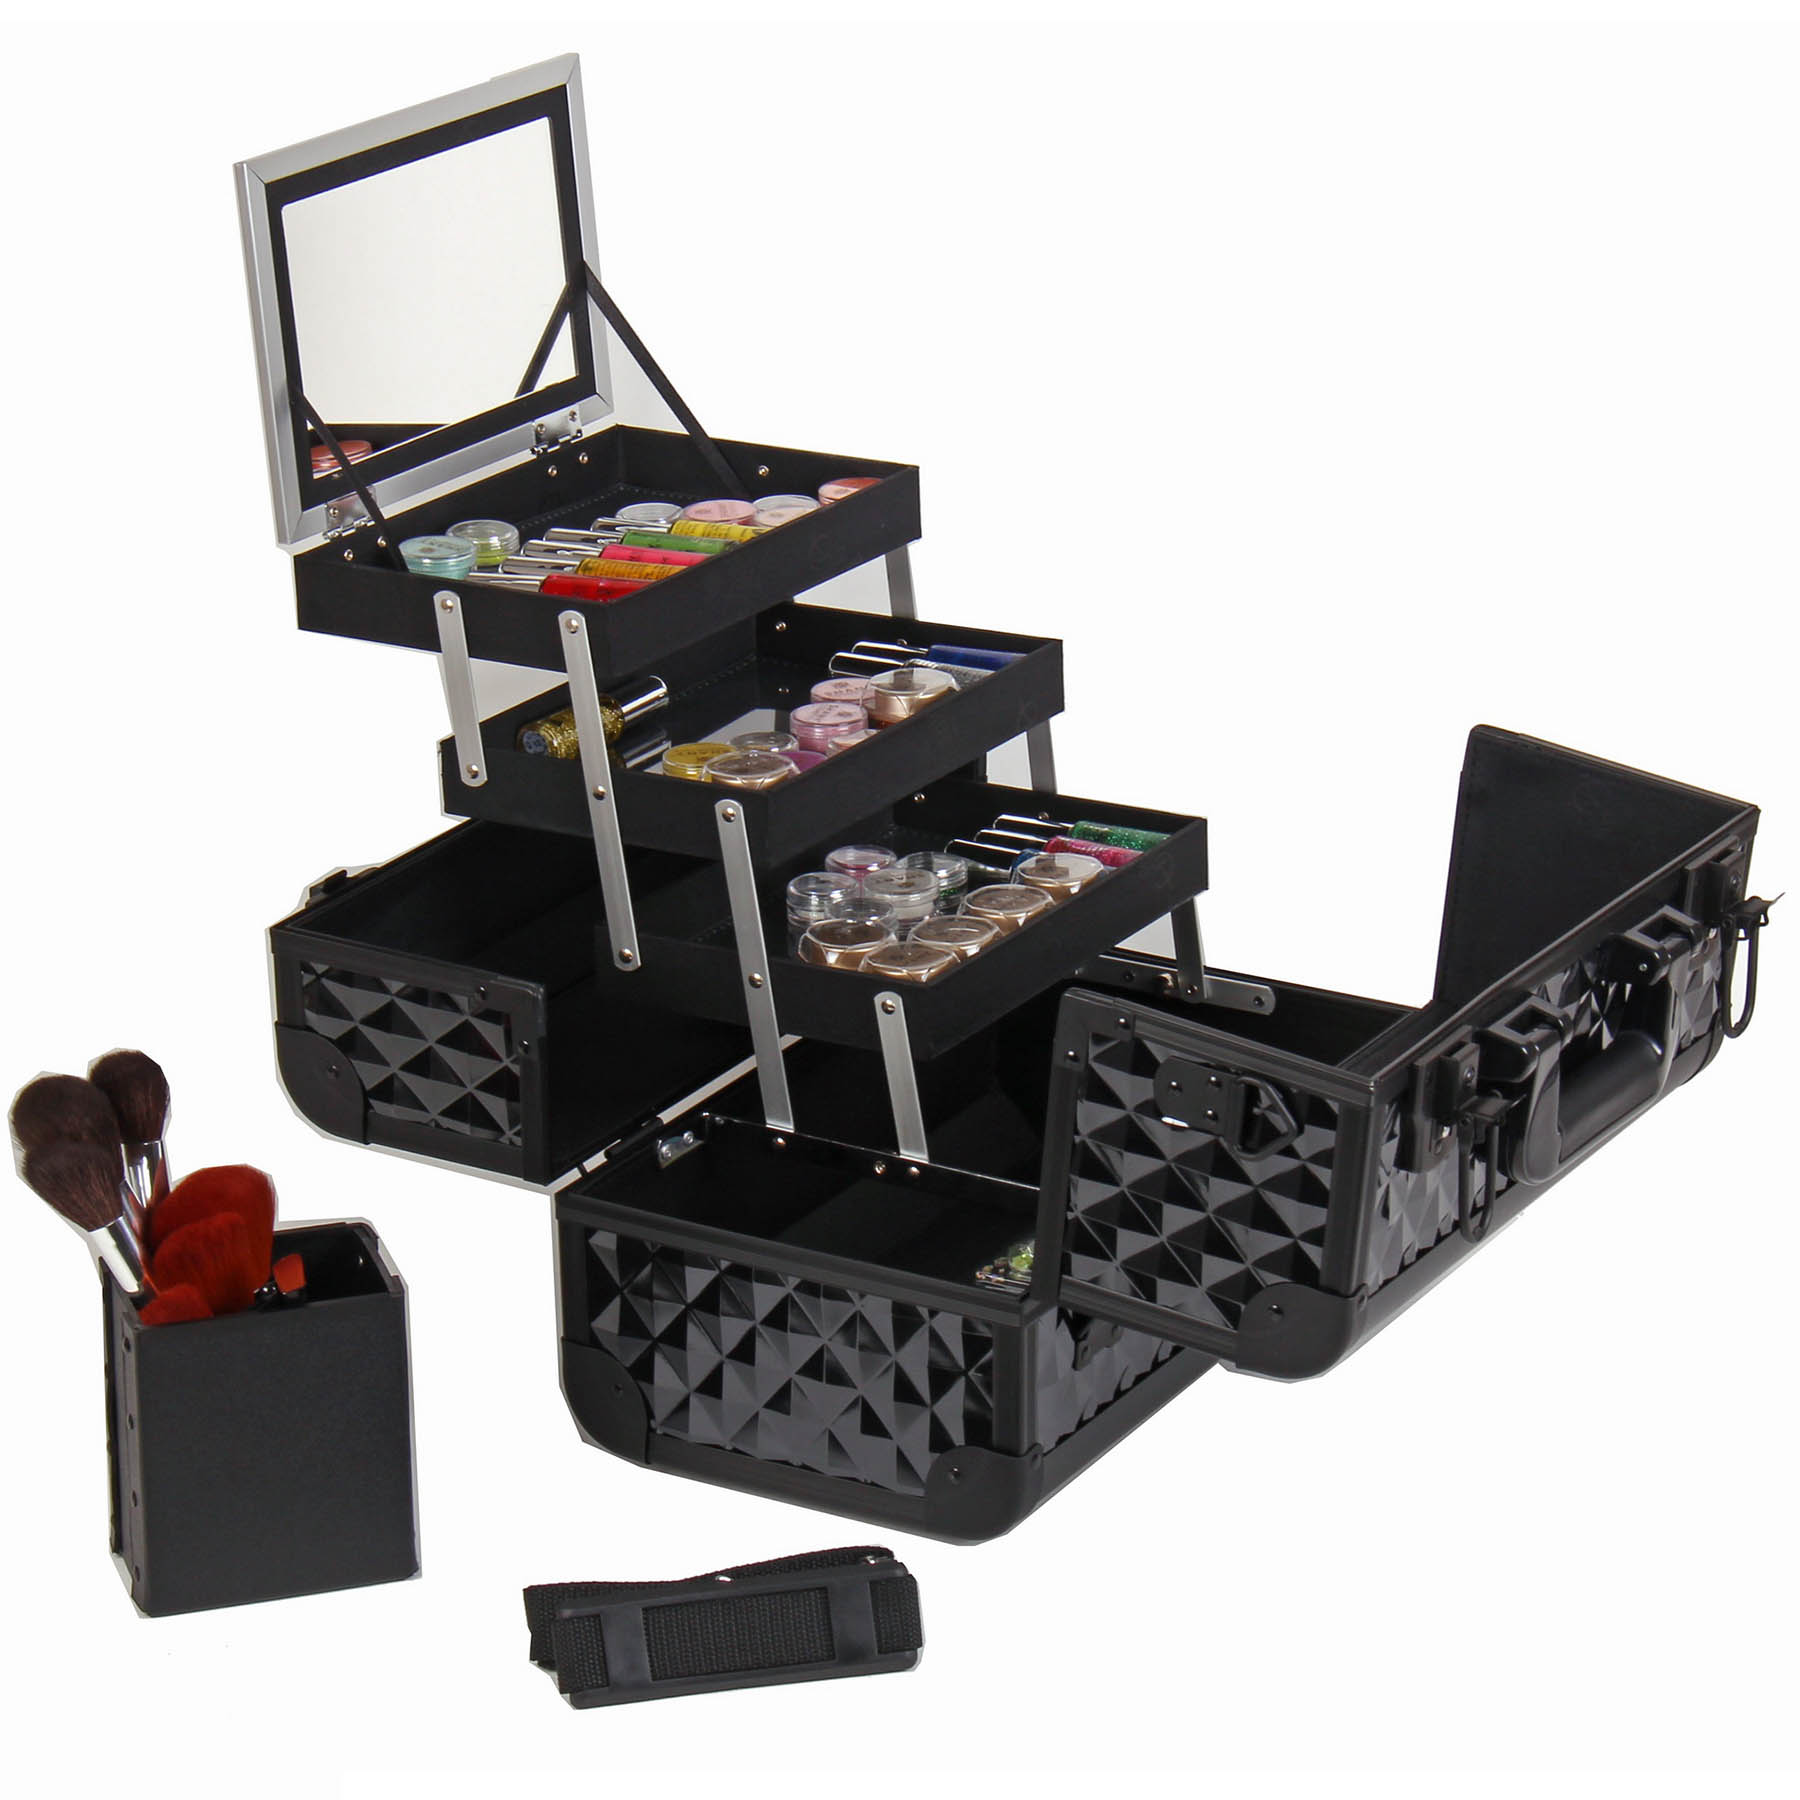 SHANY-Fantasy-Collection-Makeup-Artists-Cosmetics-Train-Case miniature 5